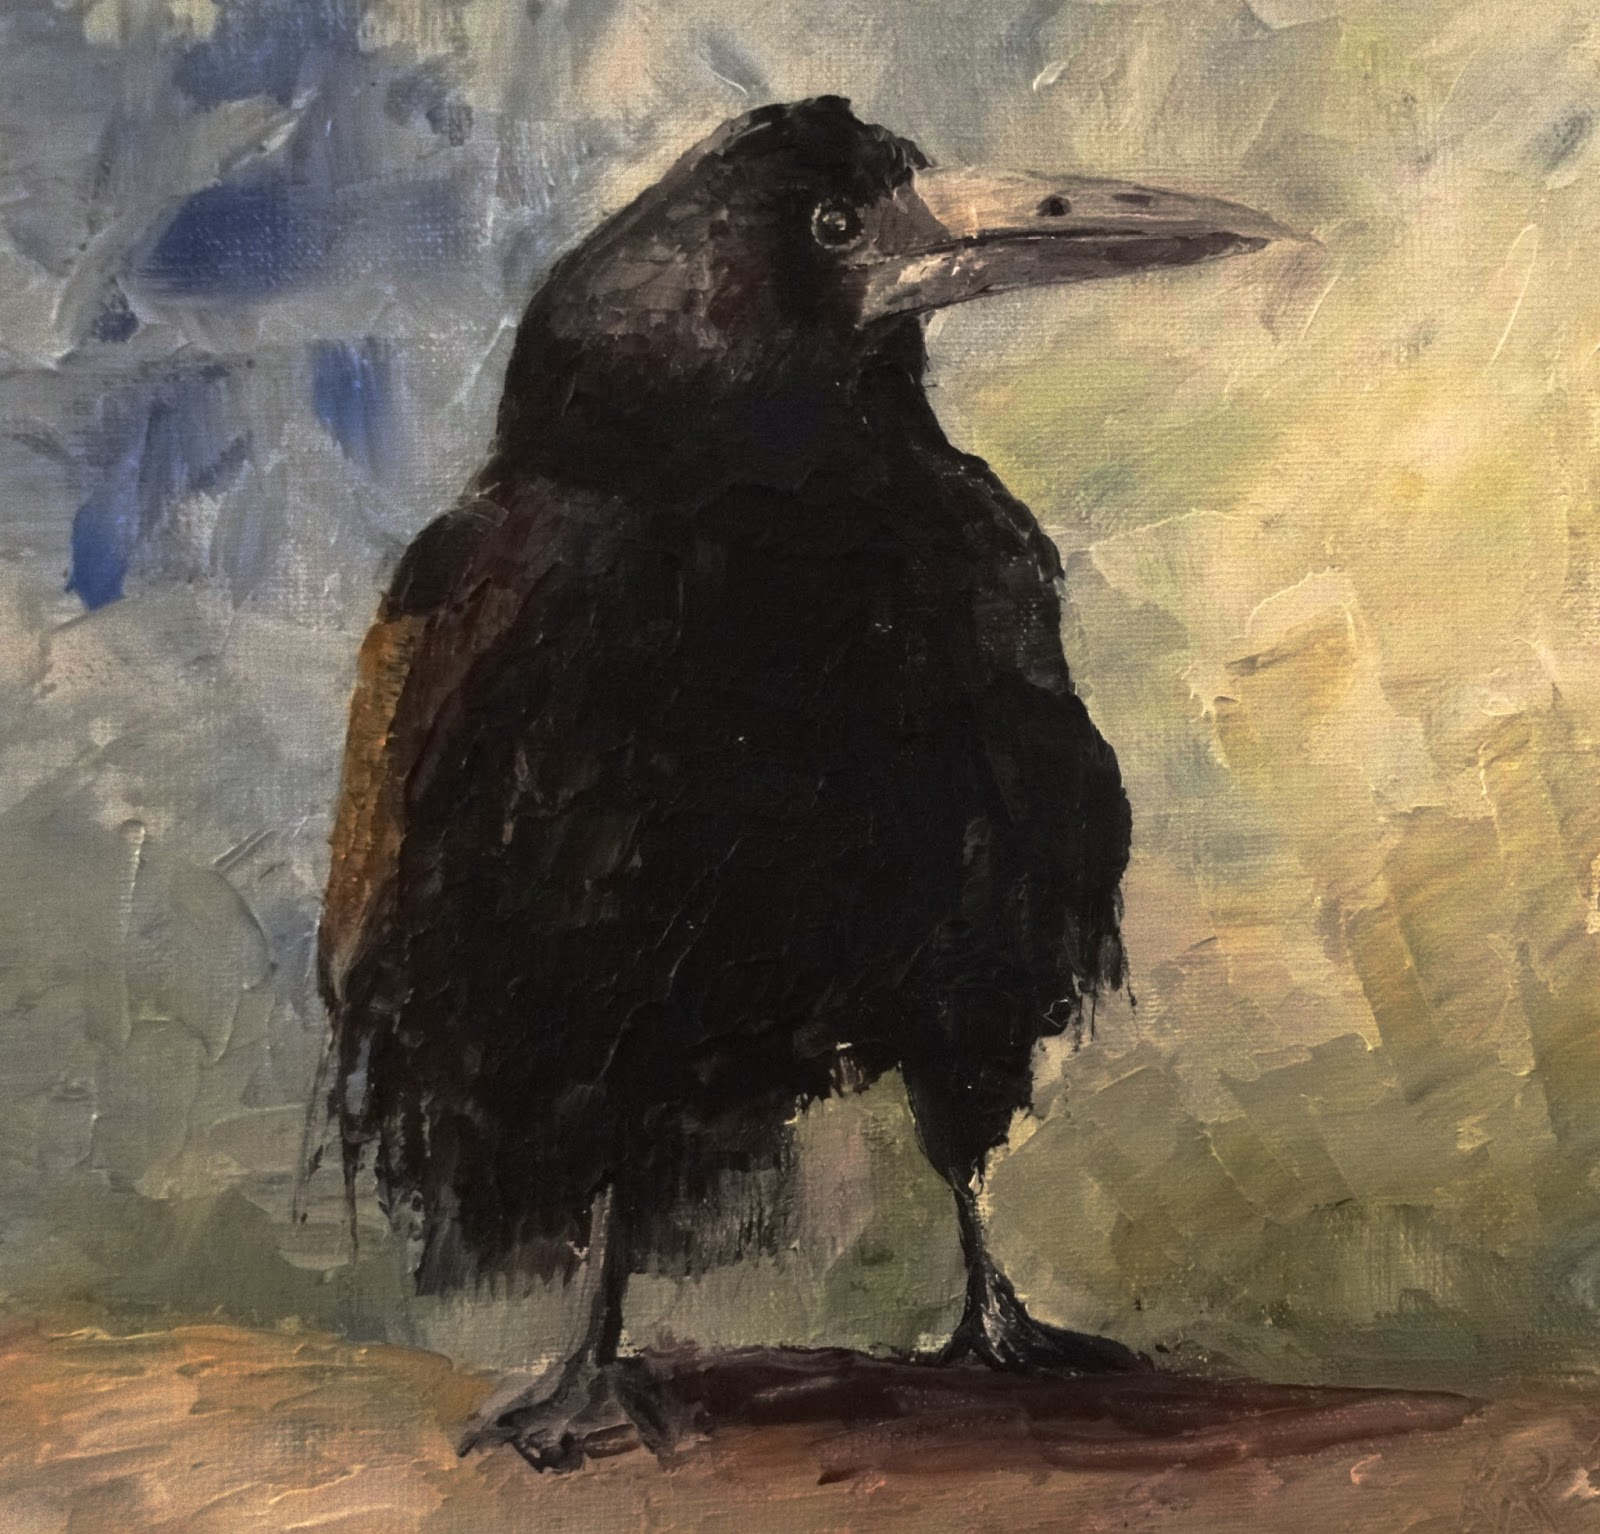 Oil painting with palette knife of a raven, trying to capture the spirit of the bird